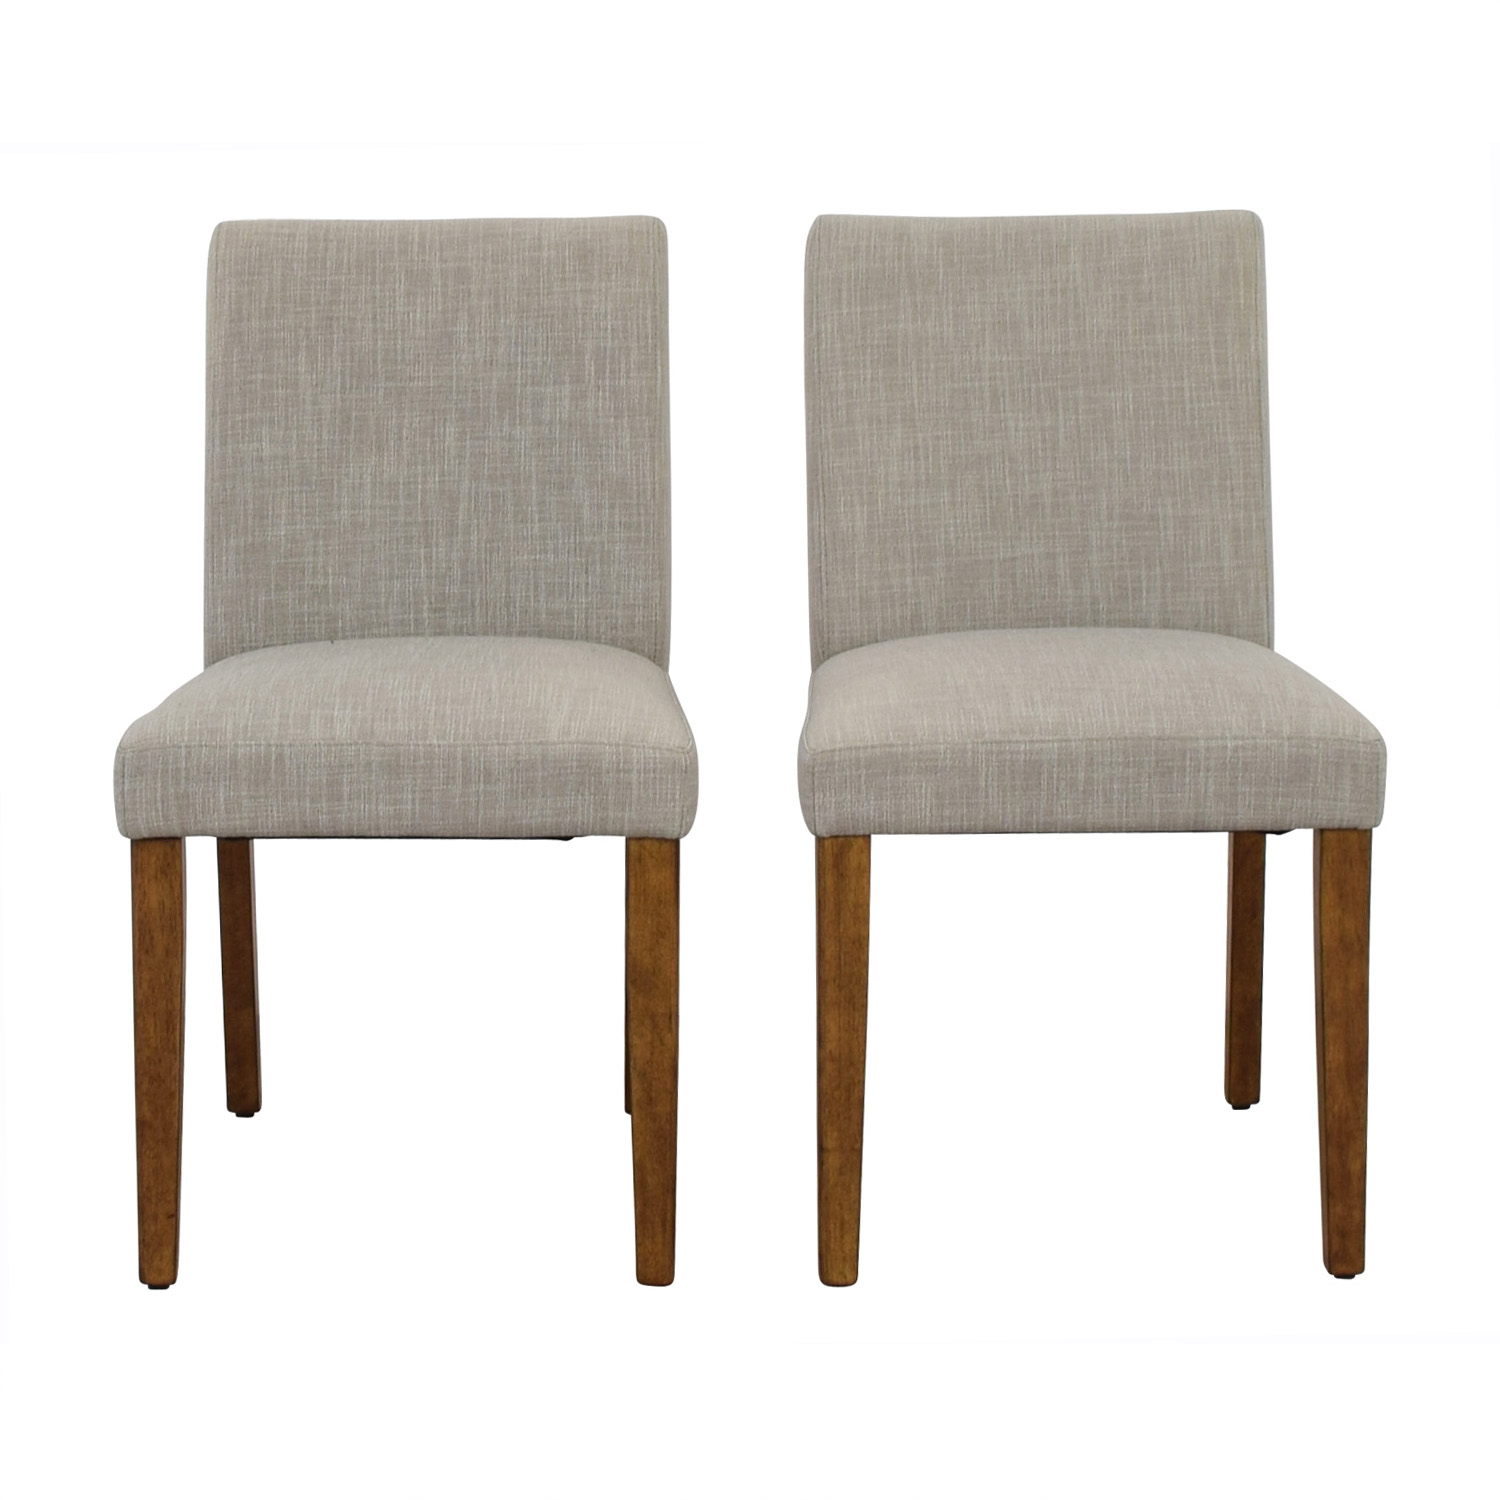 buy West Elm Being Upholstered Dining Chairs West Elm